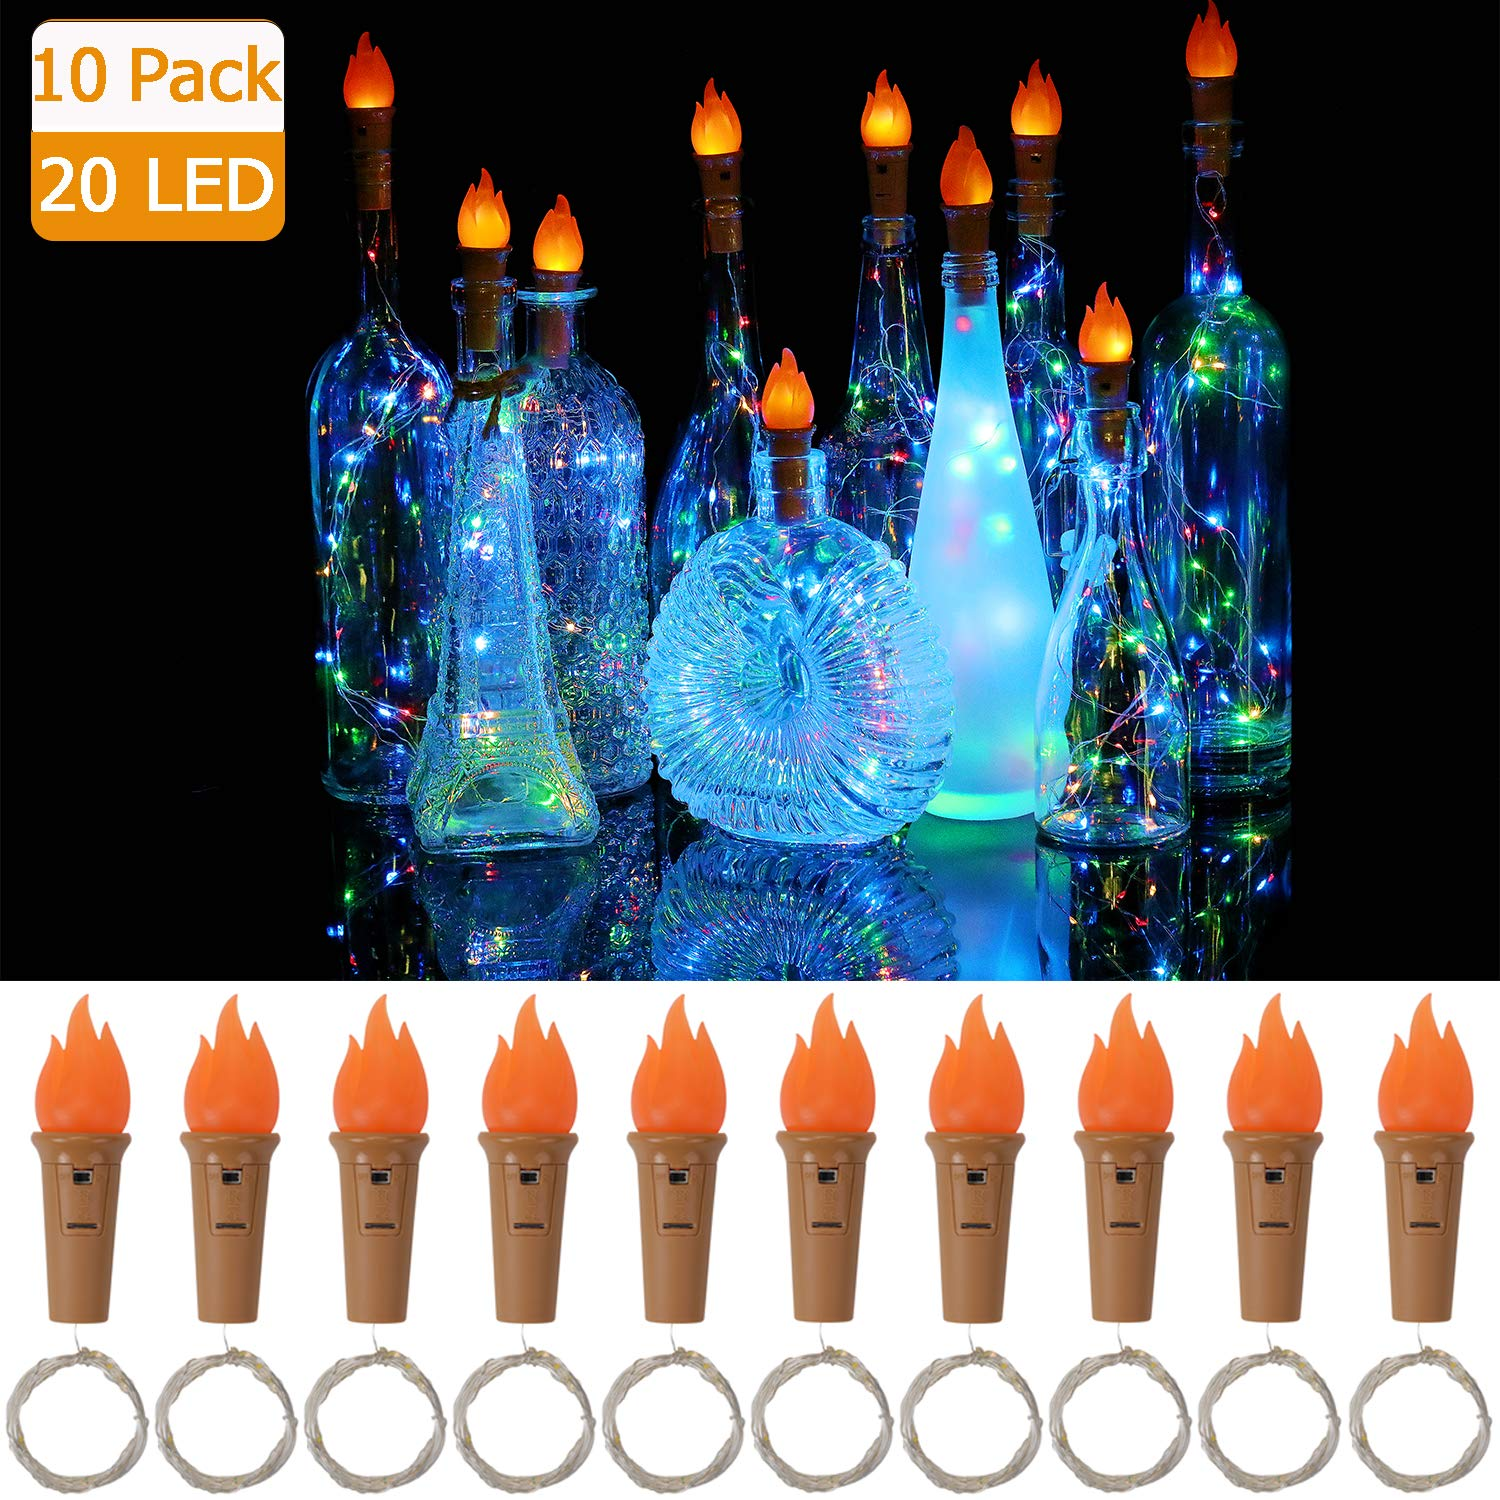 10 Pack 20 LED 6.6ft Wine Bottle Lights With Torch Battery Powered Cork Lights For Bottles Copper Wire String Lights Party Decor